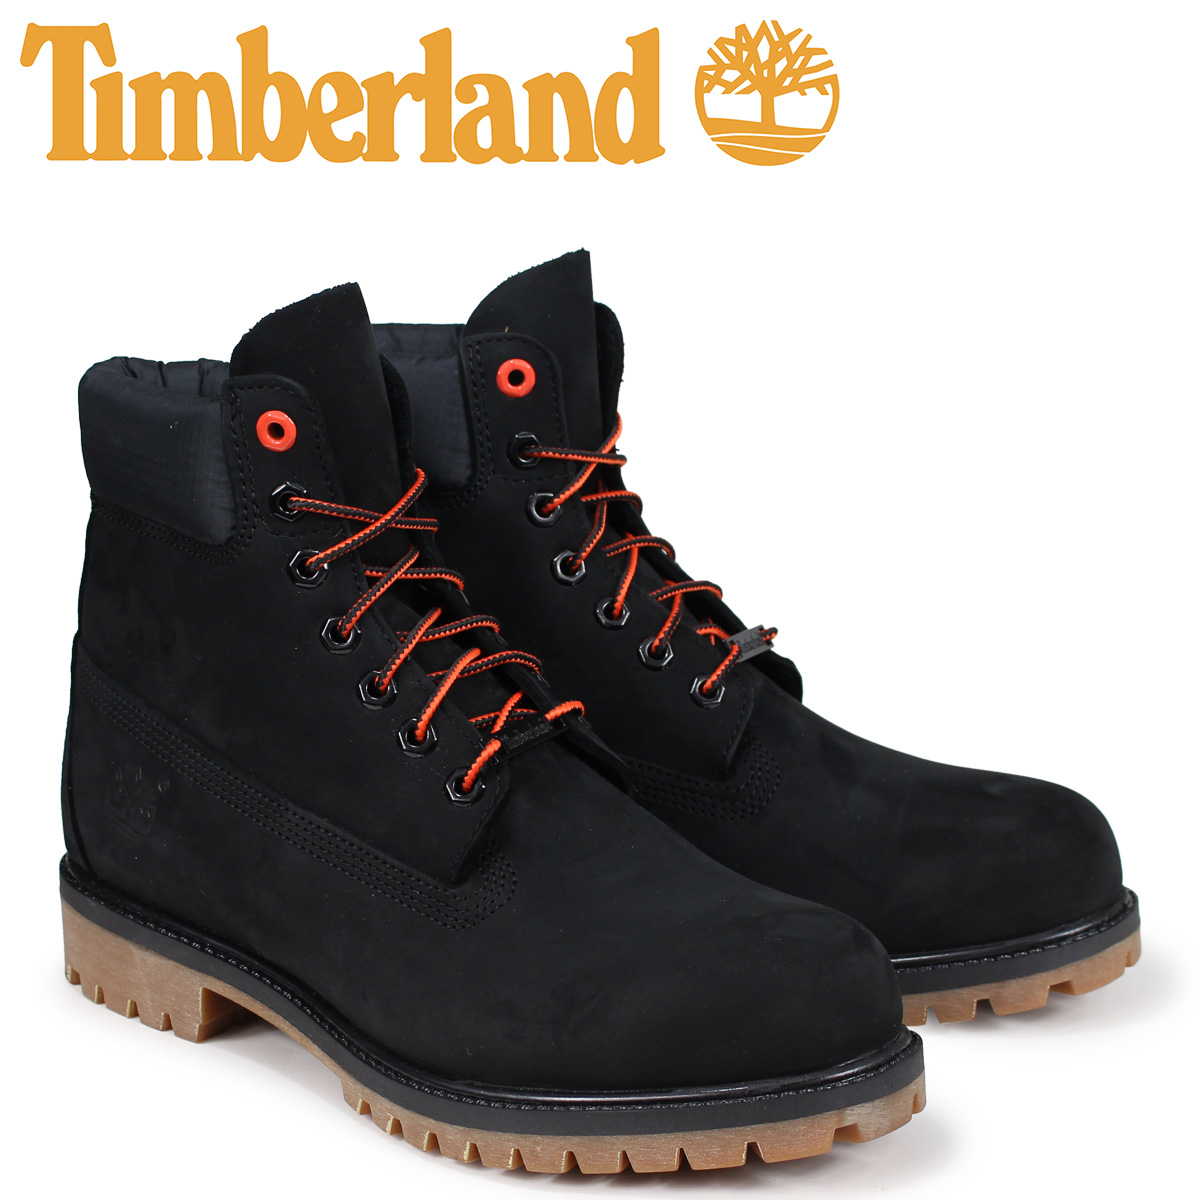 6 Inches Of Timberland Timberland Boots Men 6 Inch Premium Boots A1U7M W Wise Black Timberland Sneakers Mens Shoes